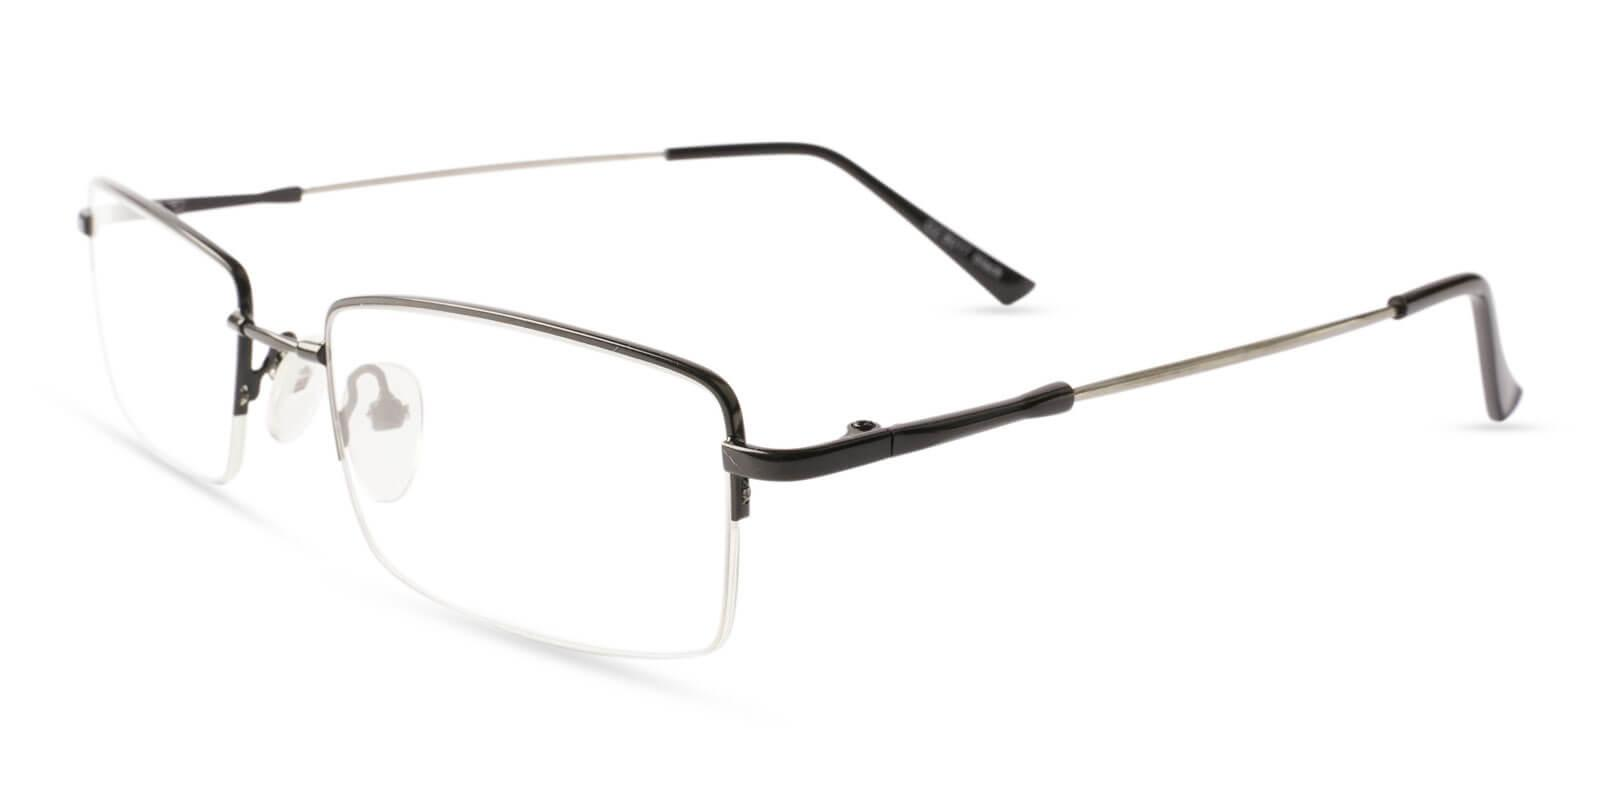 Ezra Black Metal Eyeglasses , NosePads Frames from ABBE Glasses